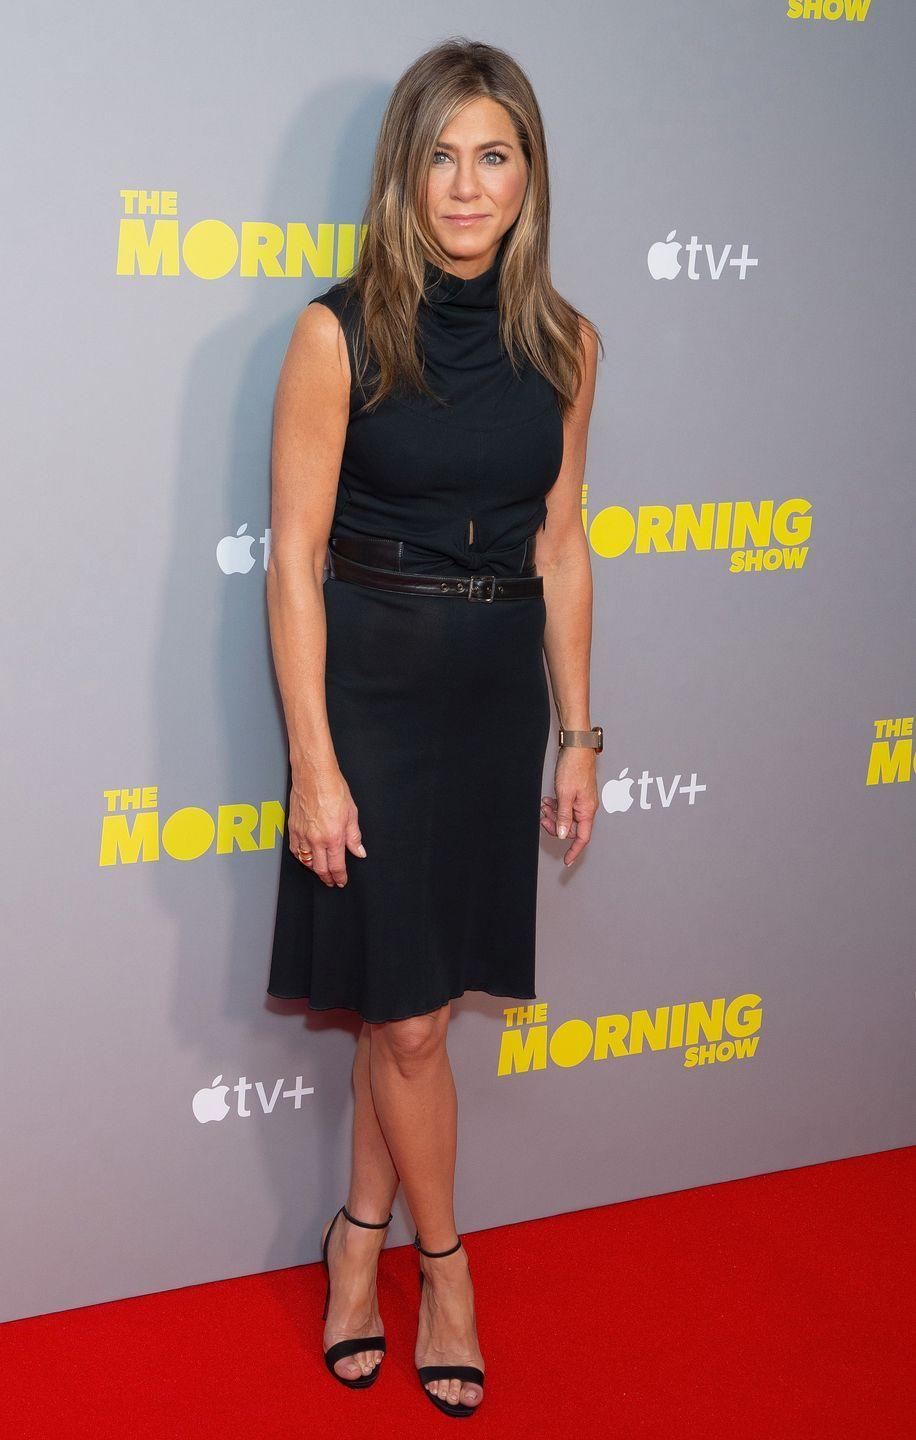 "<p>""I do intermittent fasting, so no food in the morning,"" Jennifer told UK outlet <a href=""https://www.womenshealthmag.com/weight-loss/a29547718/jennifer-aniston-reese-witherspoon-intermittent-fasting/"" rel=""nofollow noopener"" target=""_blank"" data-ylk=""slk:Radio Times"" class=""link rapid-noclick-resp"">Radio Times</a>. ""I noticed a big difference in going without solid food for 16 hours.""</p>"